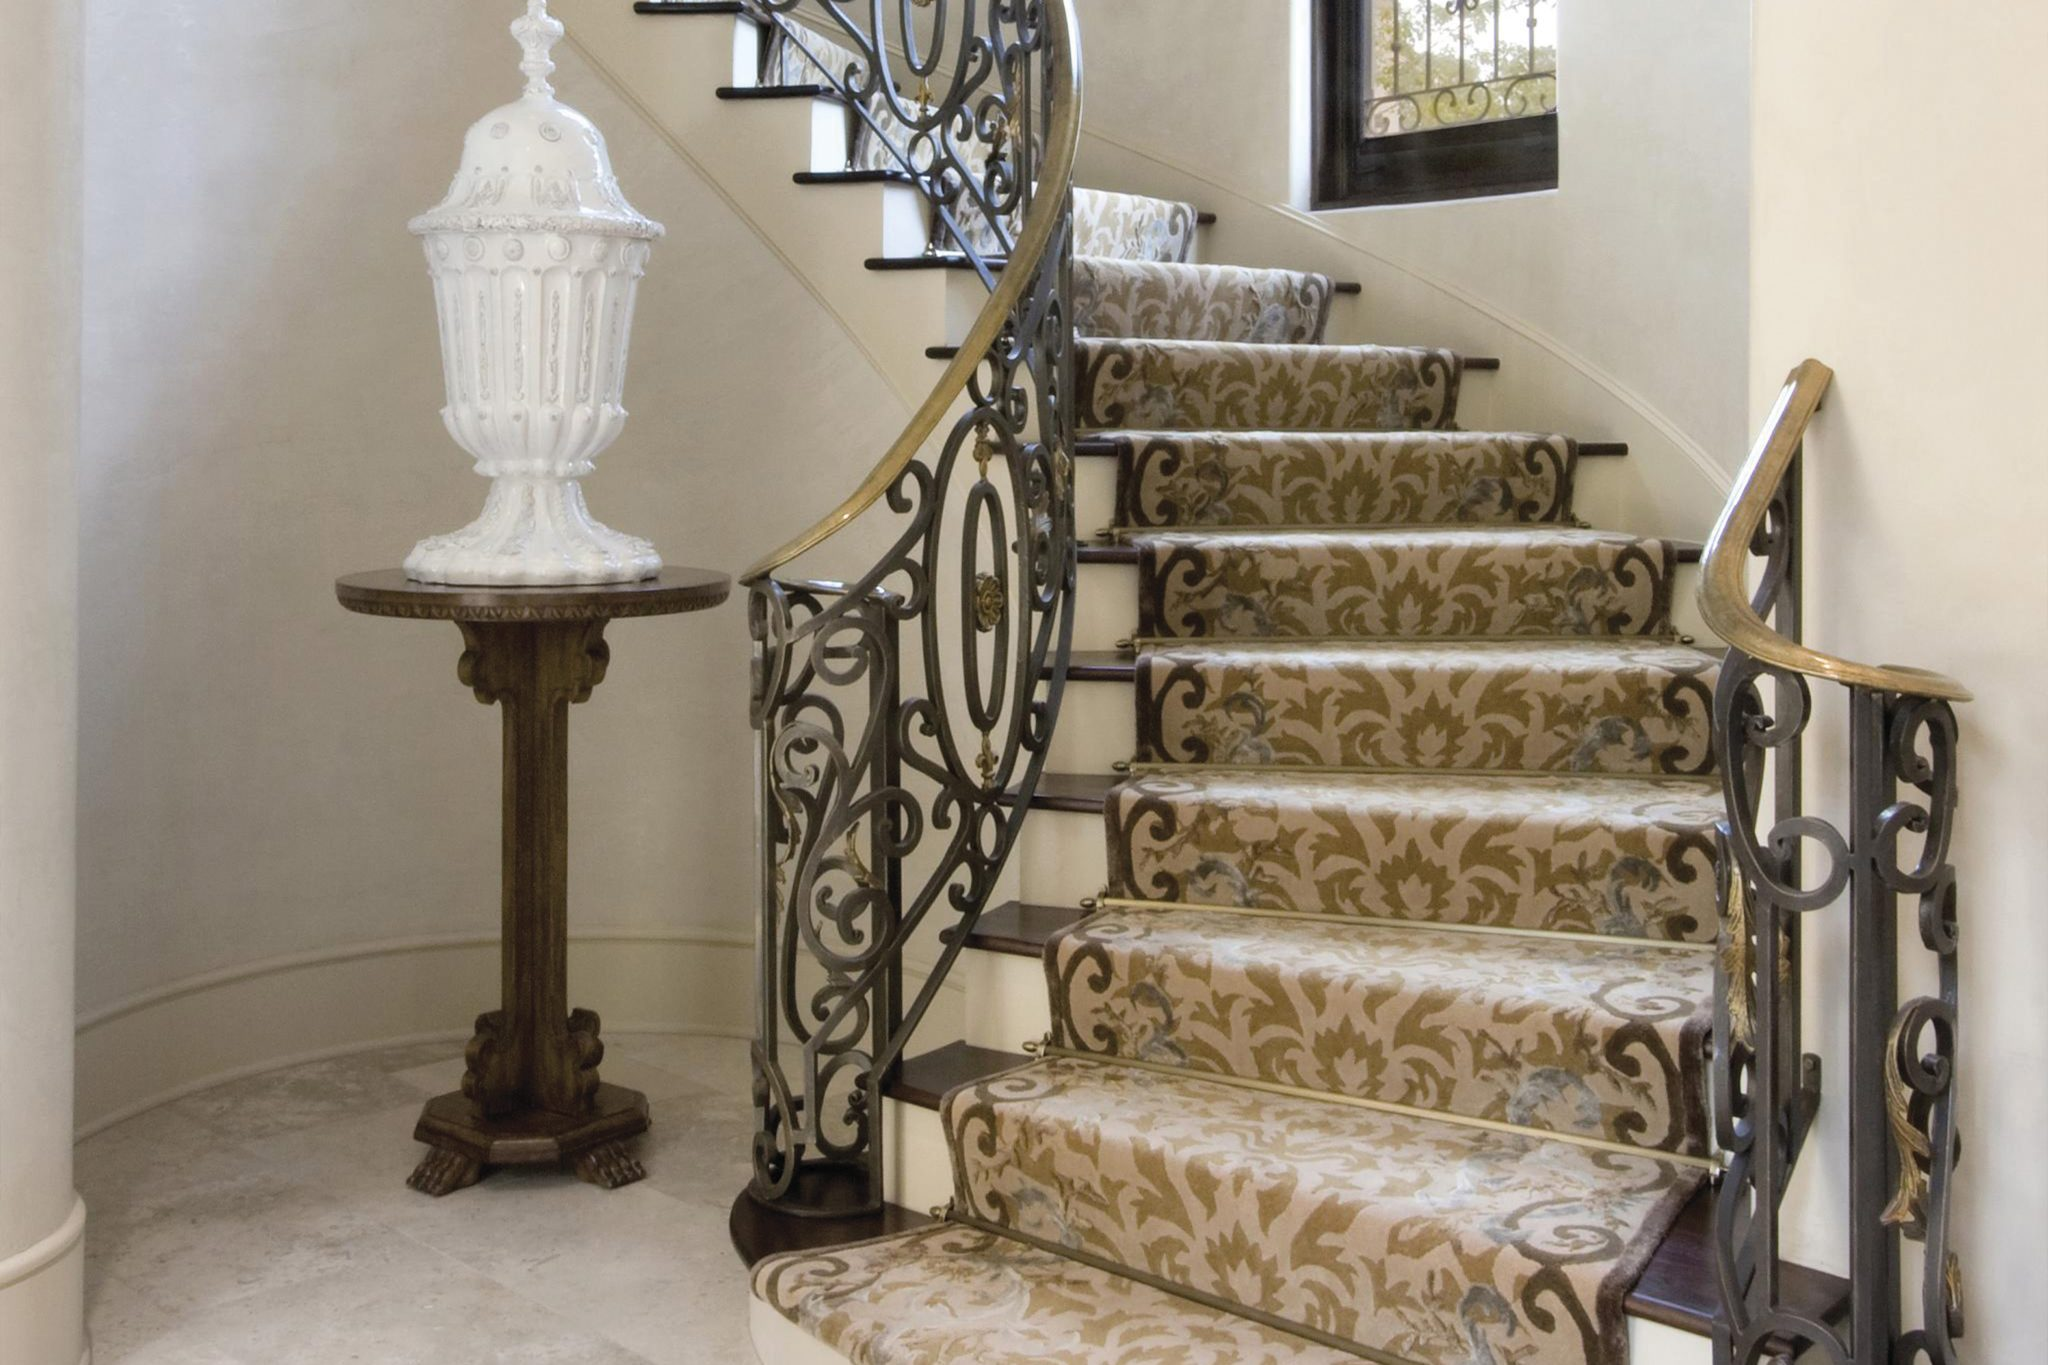 Staircase installation, by Hokanson. by Scott Group Studio